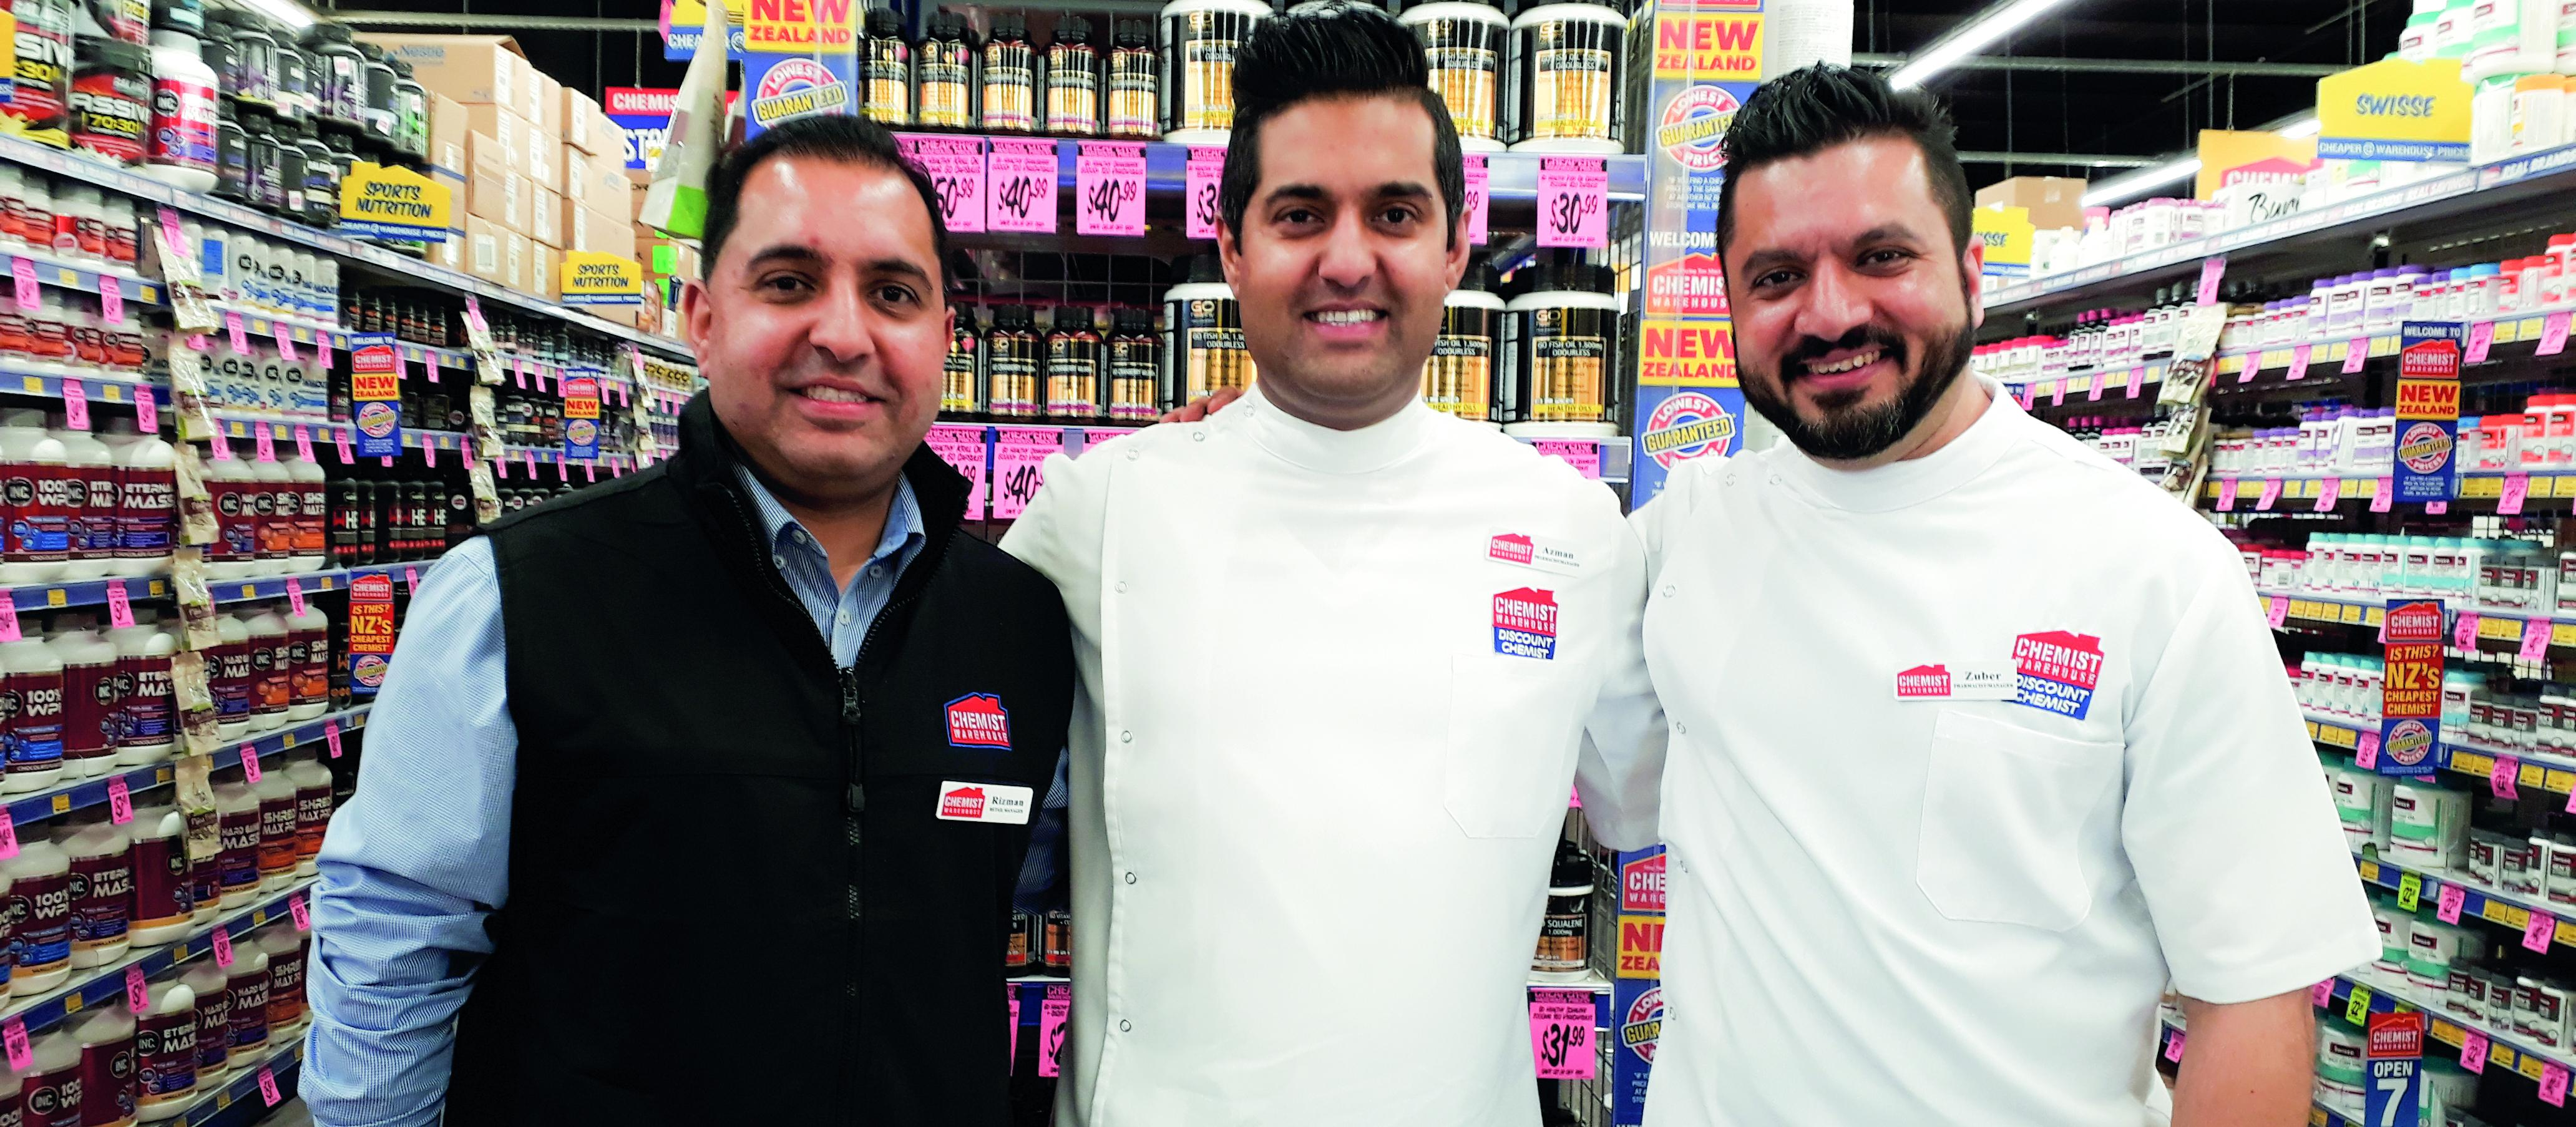 441bfb303fc Chemist Warehouse competitors promise fightback | Pharmacy Today